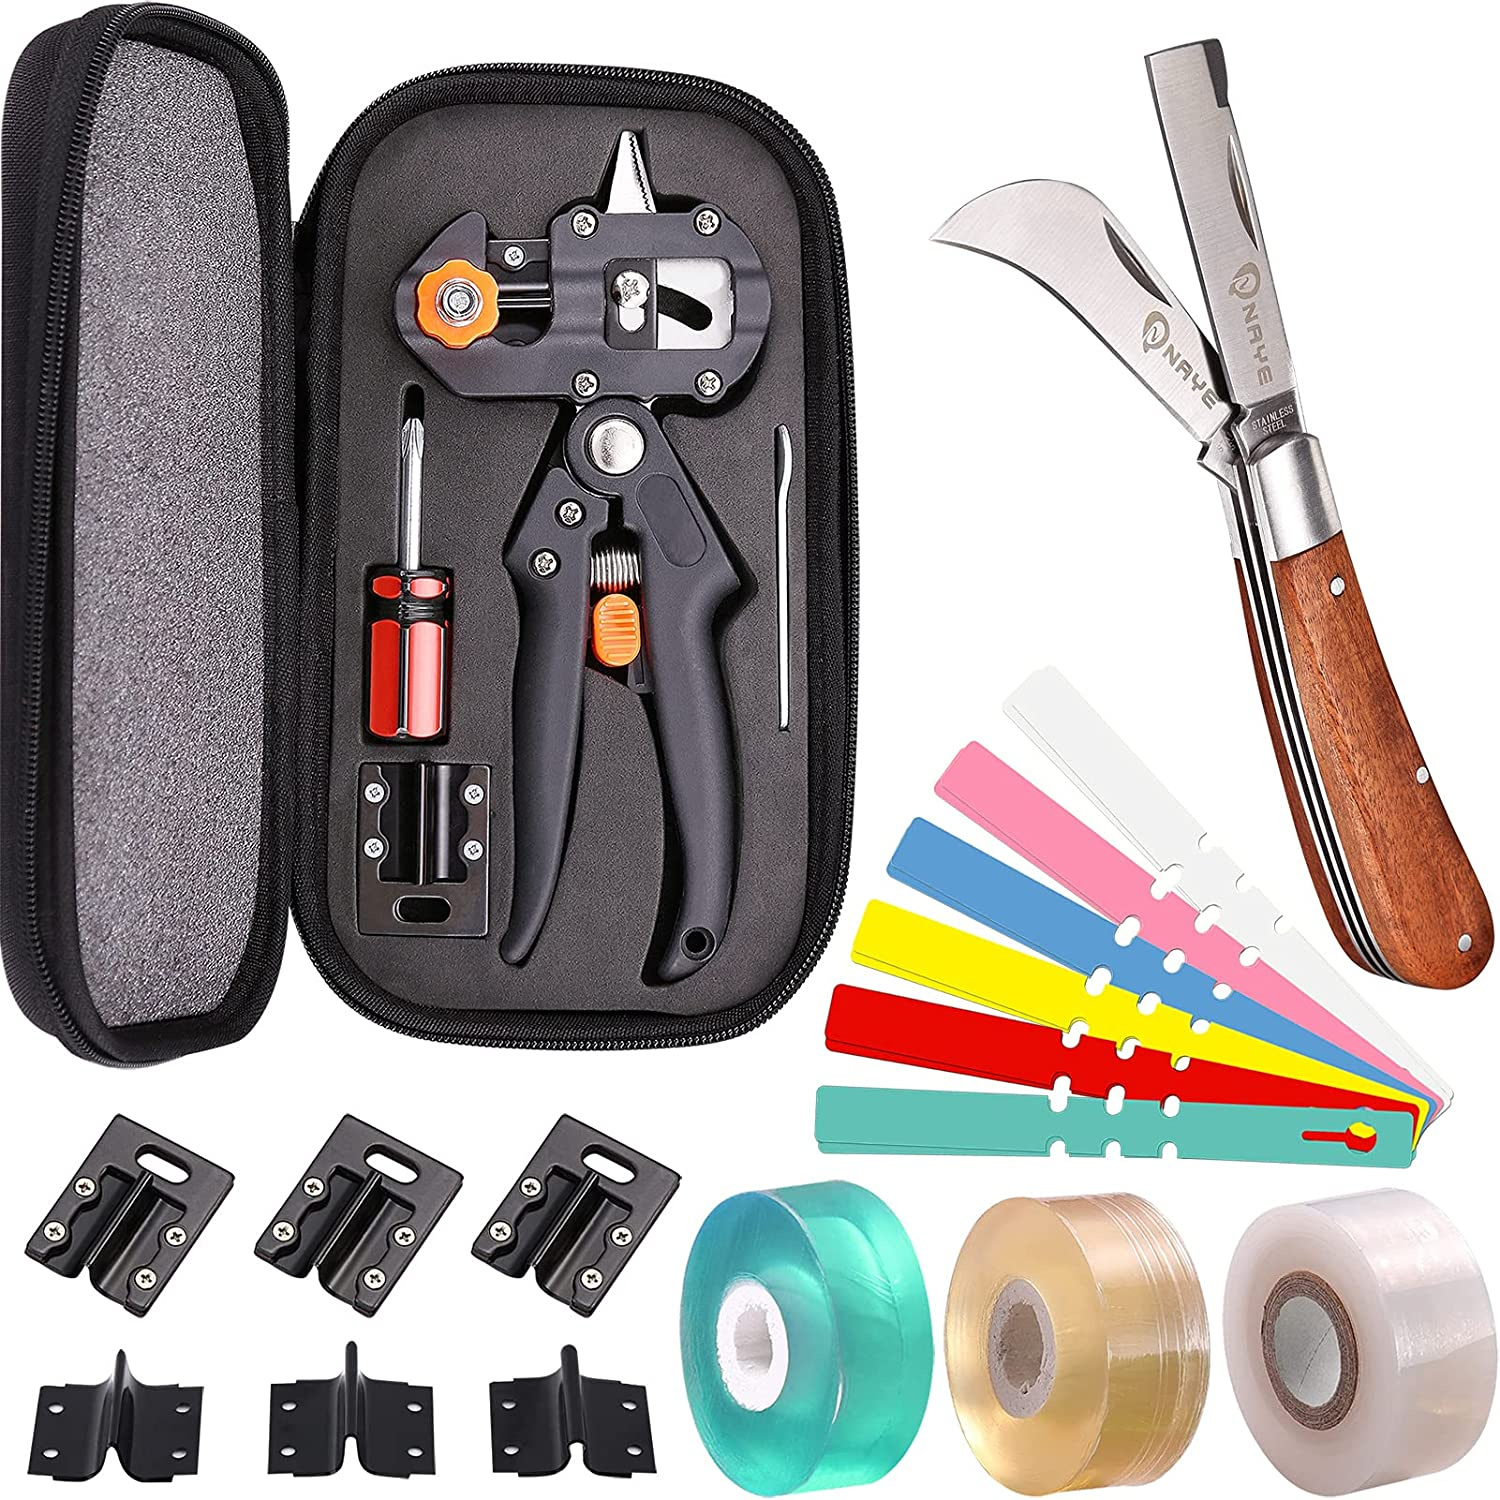 NAYE 2 in 1 Garden Grafting Tool Kit for Fruit Trees with Grafting Knife Grafting Tapes,Extra Replacement Blades Included